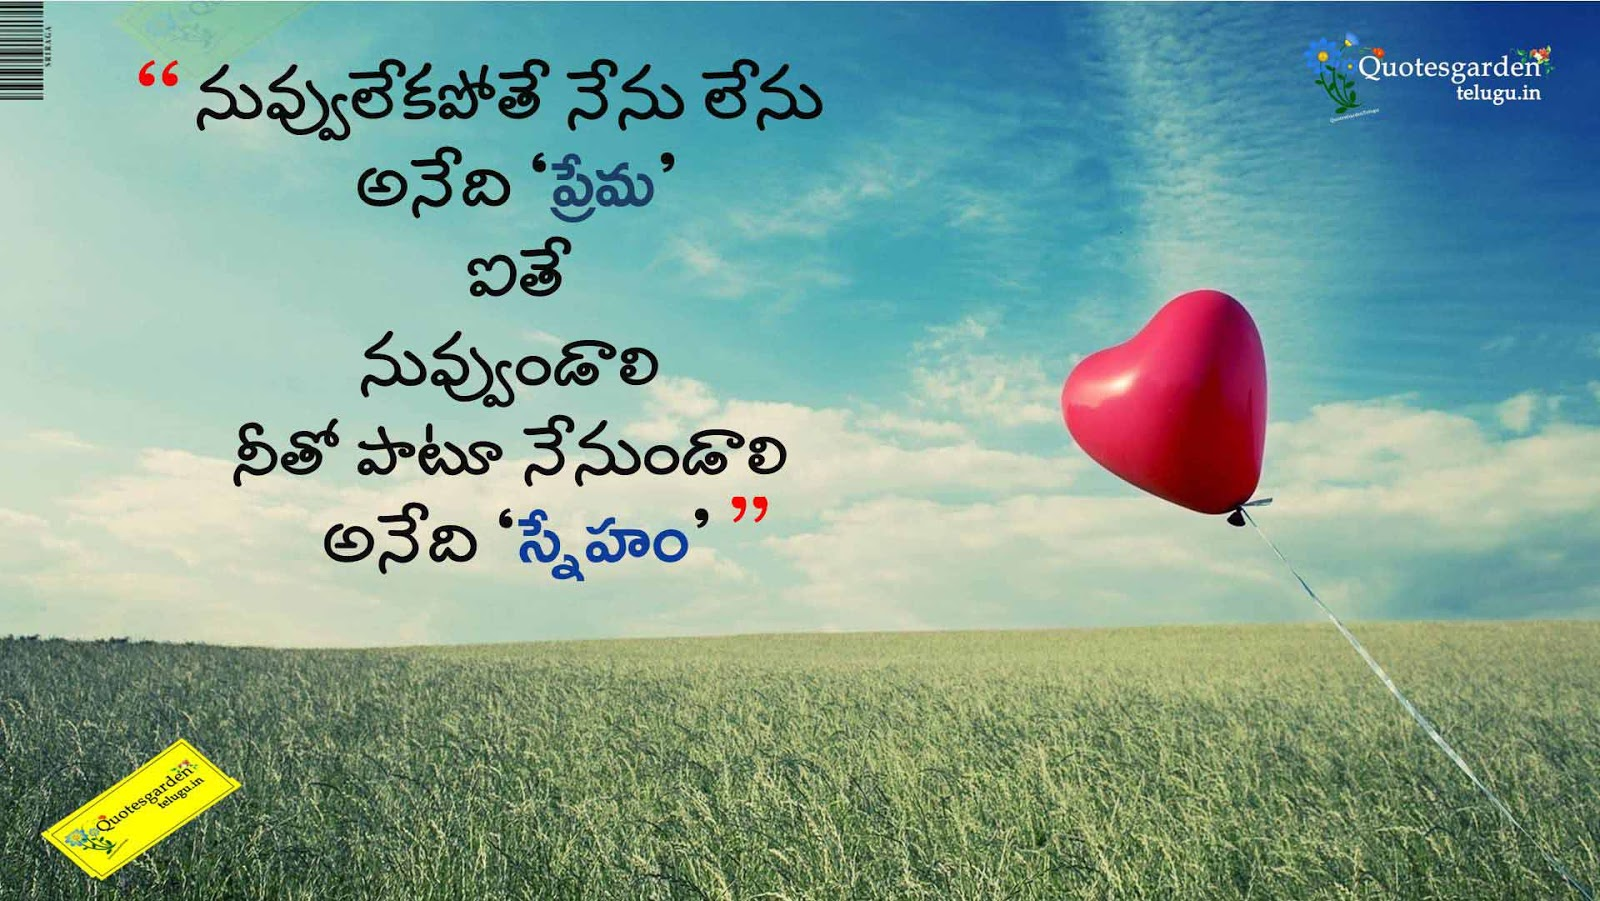 Touching Quotes About Friendship Heart Touching Friendship Quotes With Hd Images Download Heart